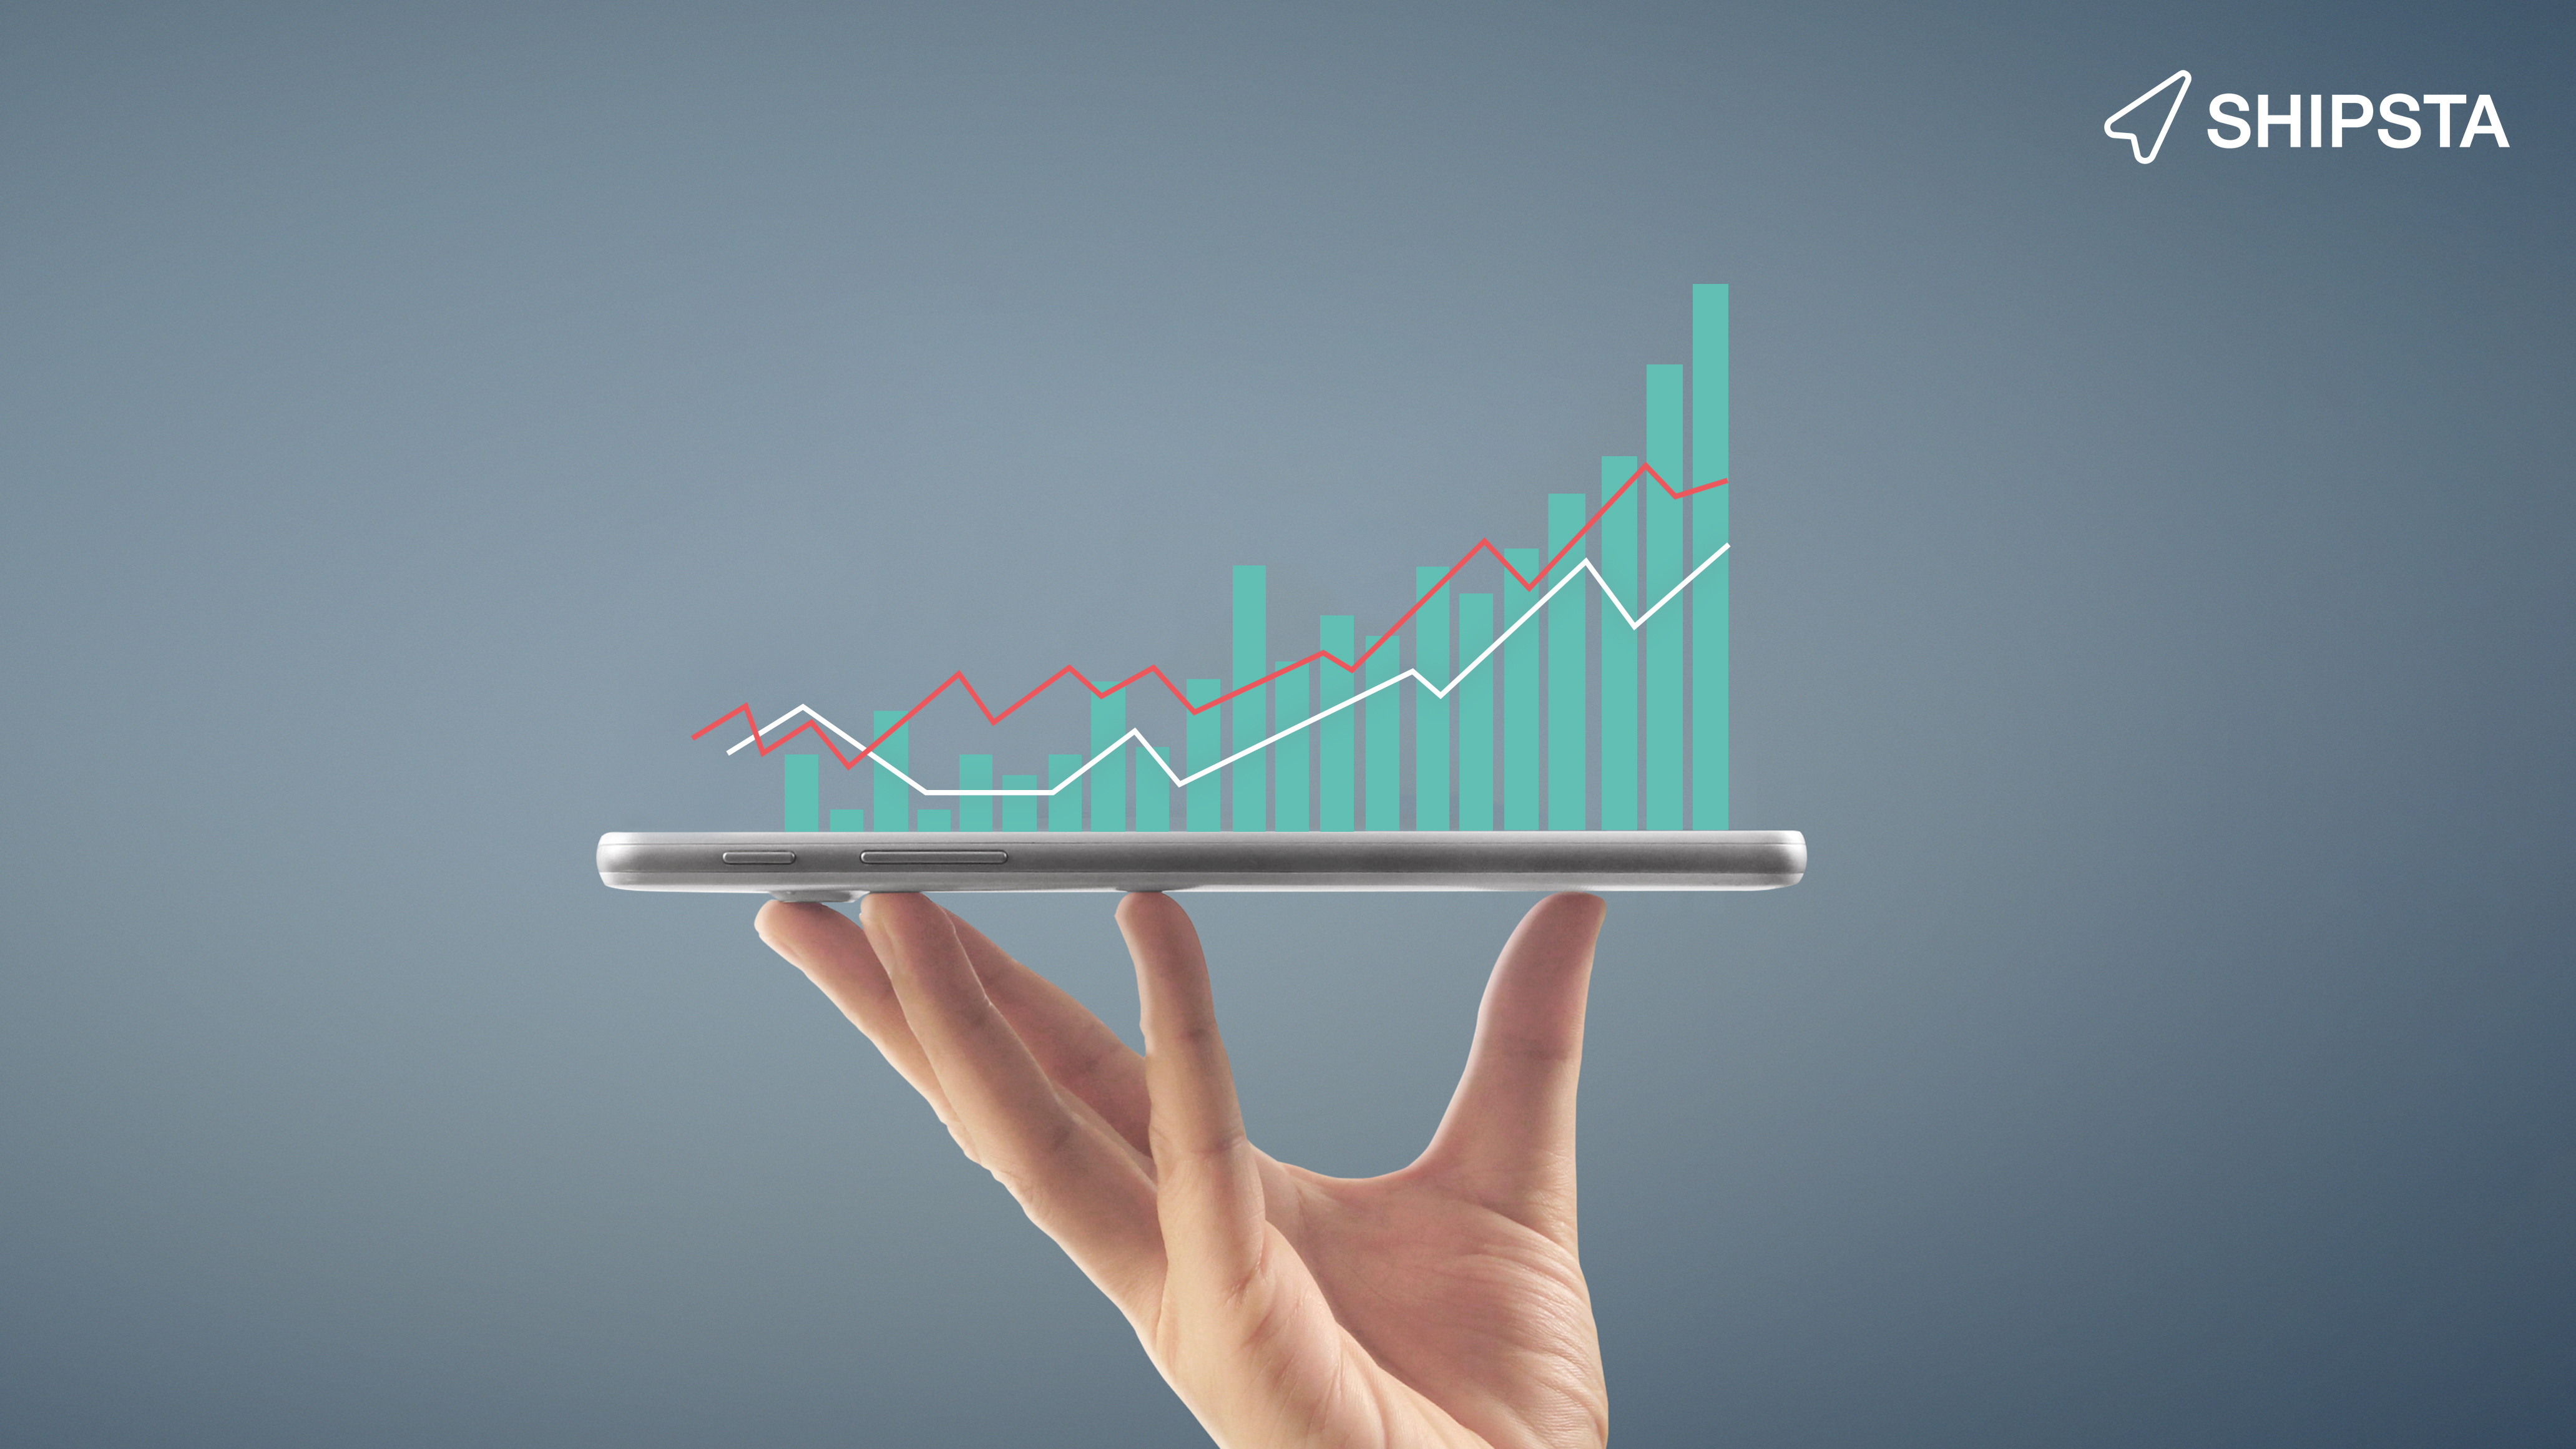 Hand holding a tablet with a graph on it.